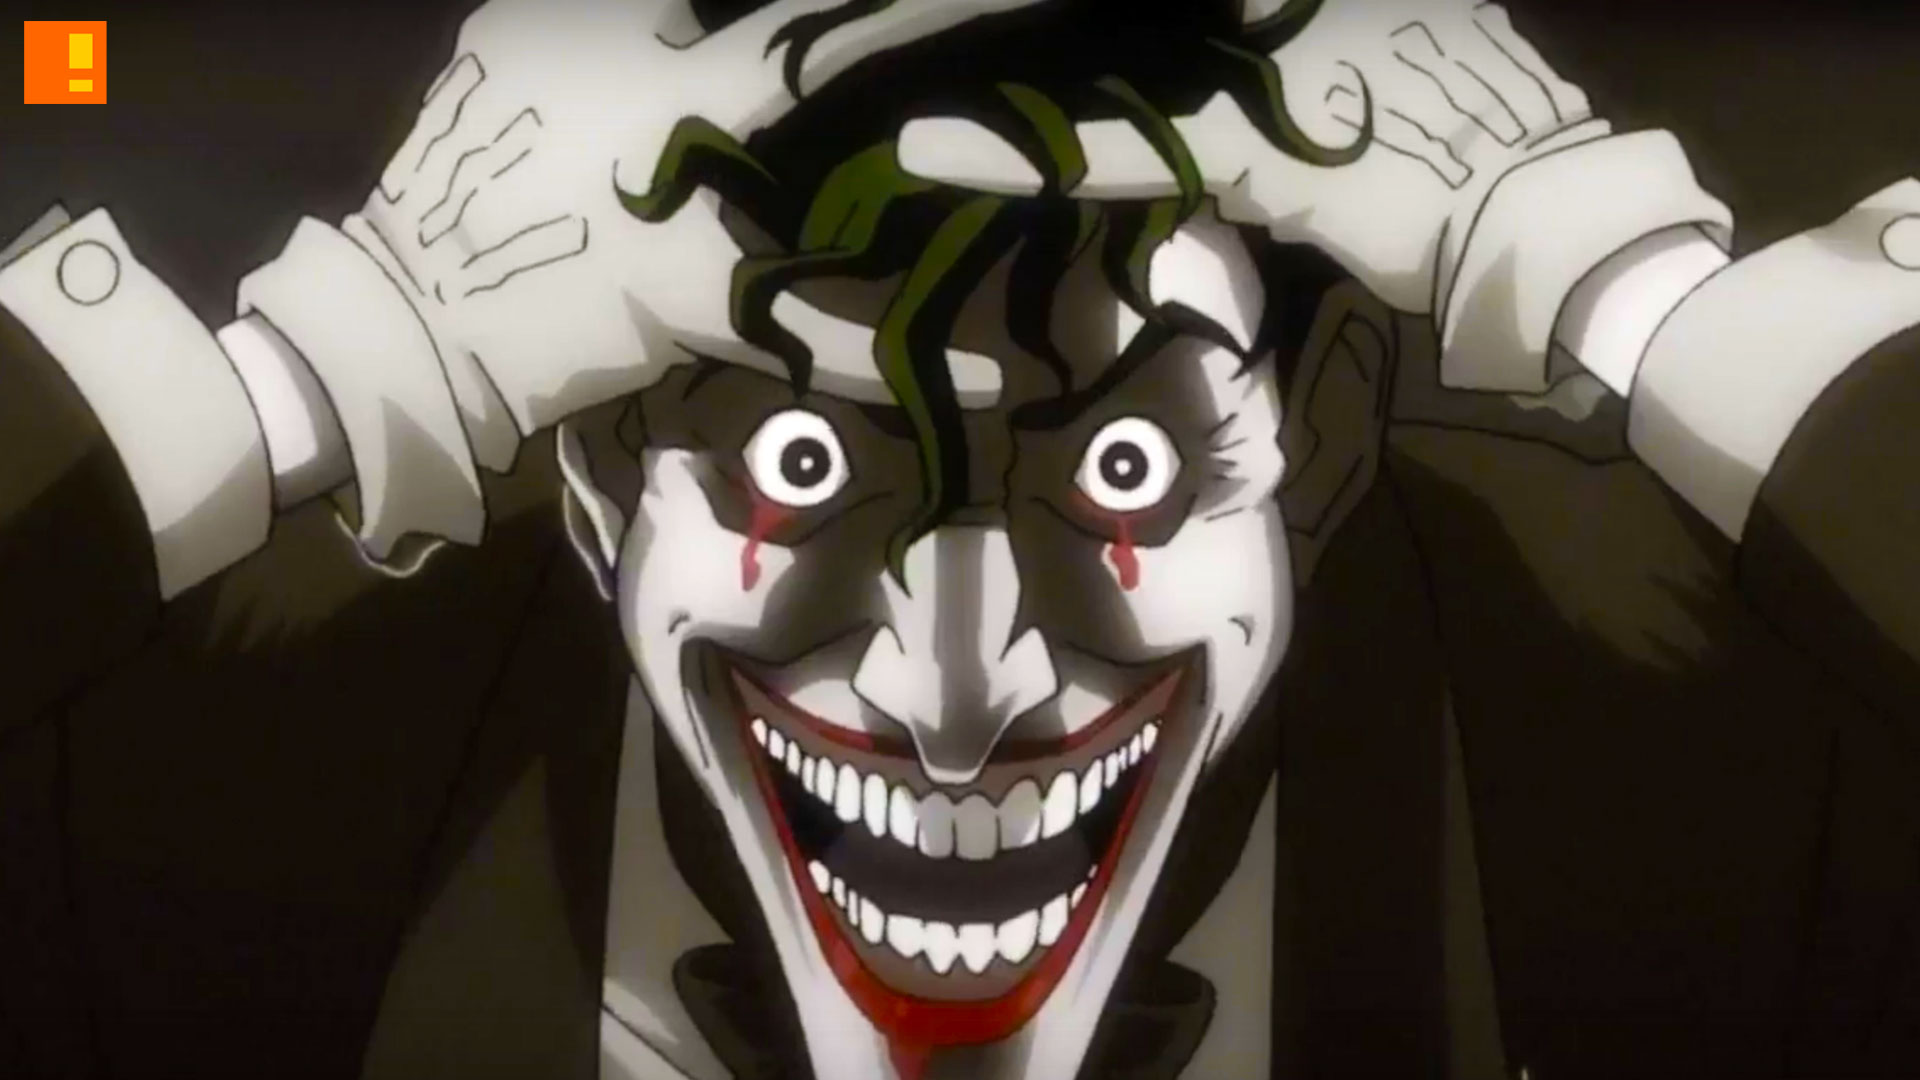 the killing joke, joker, dc comics, batman, the action pixel, @theactionpixel, wb animation, warner bros., the killing joke trailer, batman the killing joke trailer,the joker, alan moore, joker cripples batgirl, tara strong, kevin conroy, mark hamill,